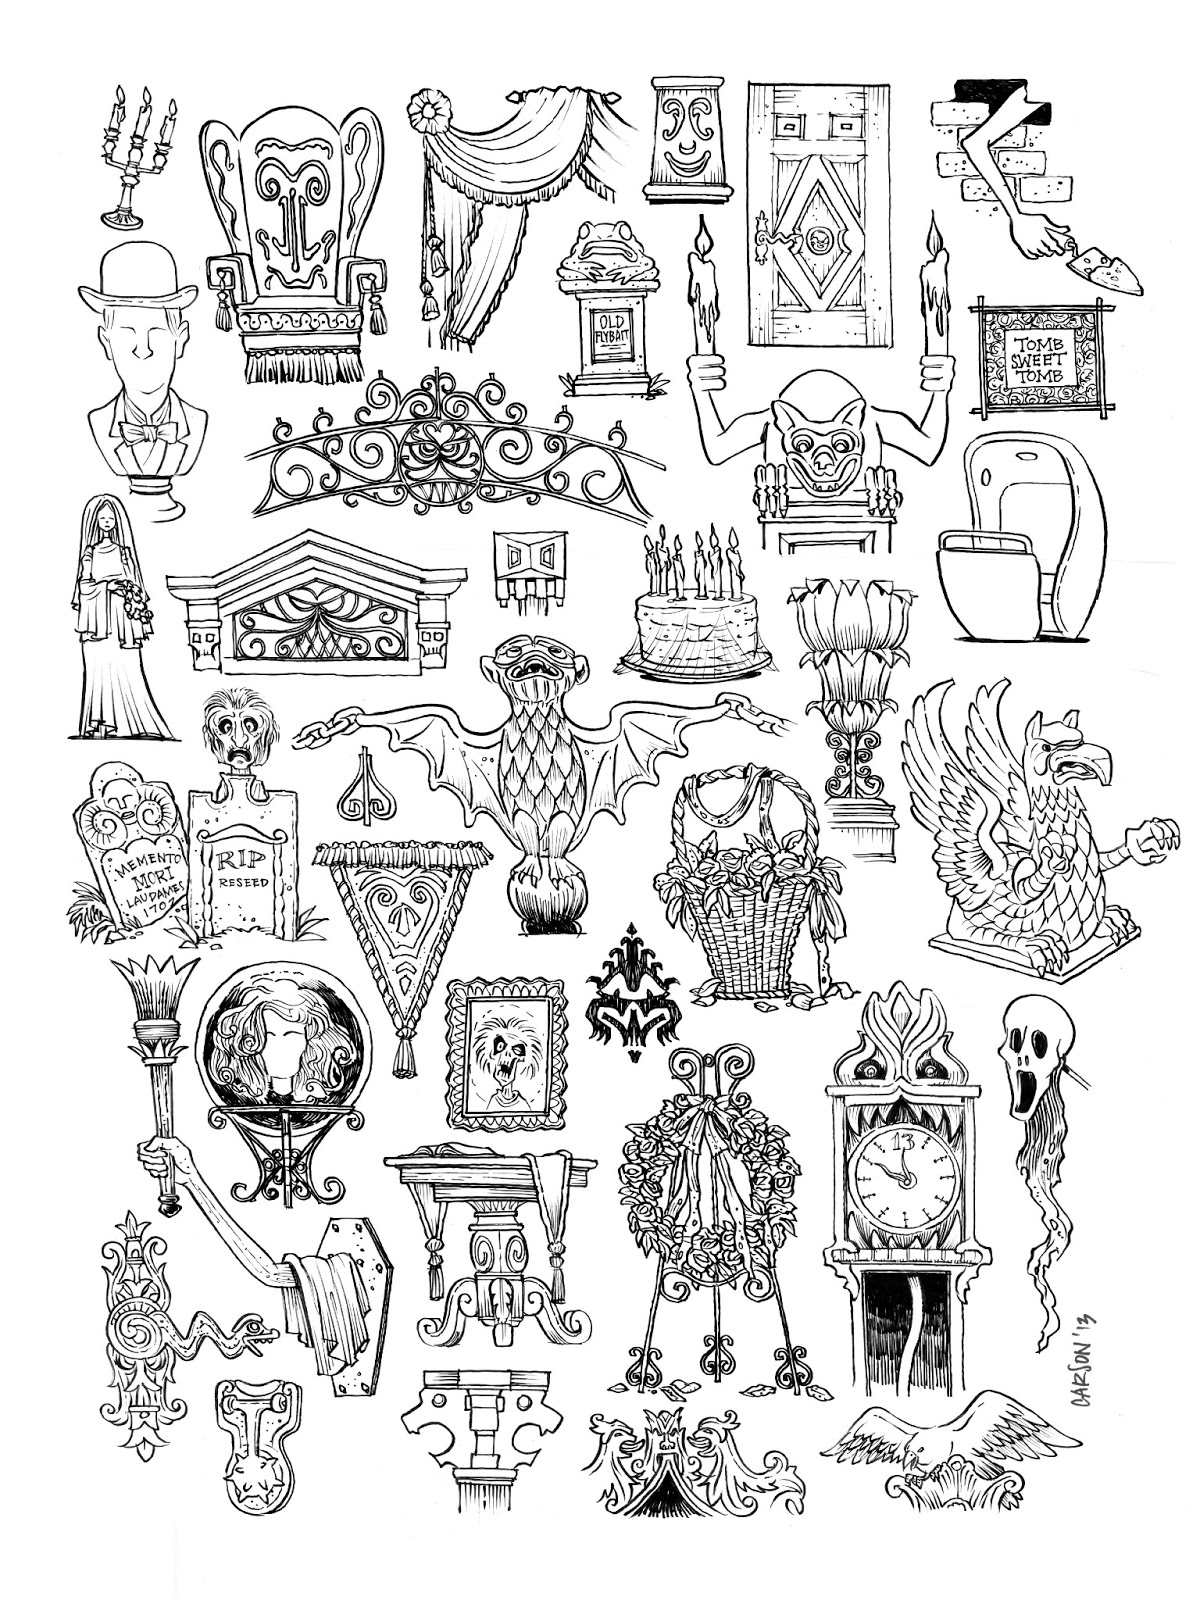 Don carson blog haunted mansion parts Haunted house drawing ideas